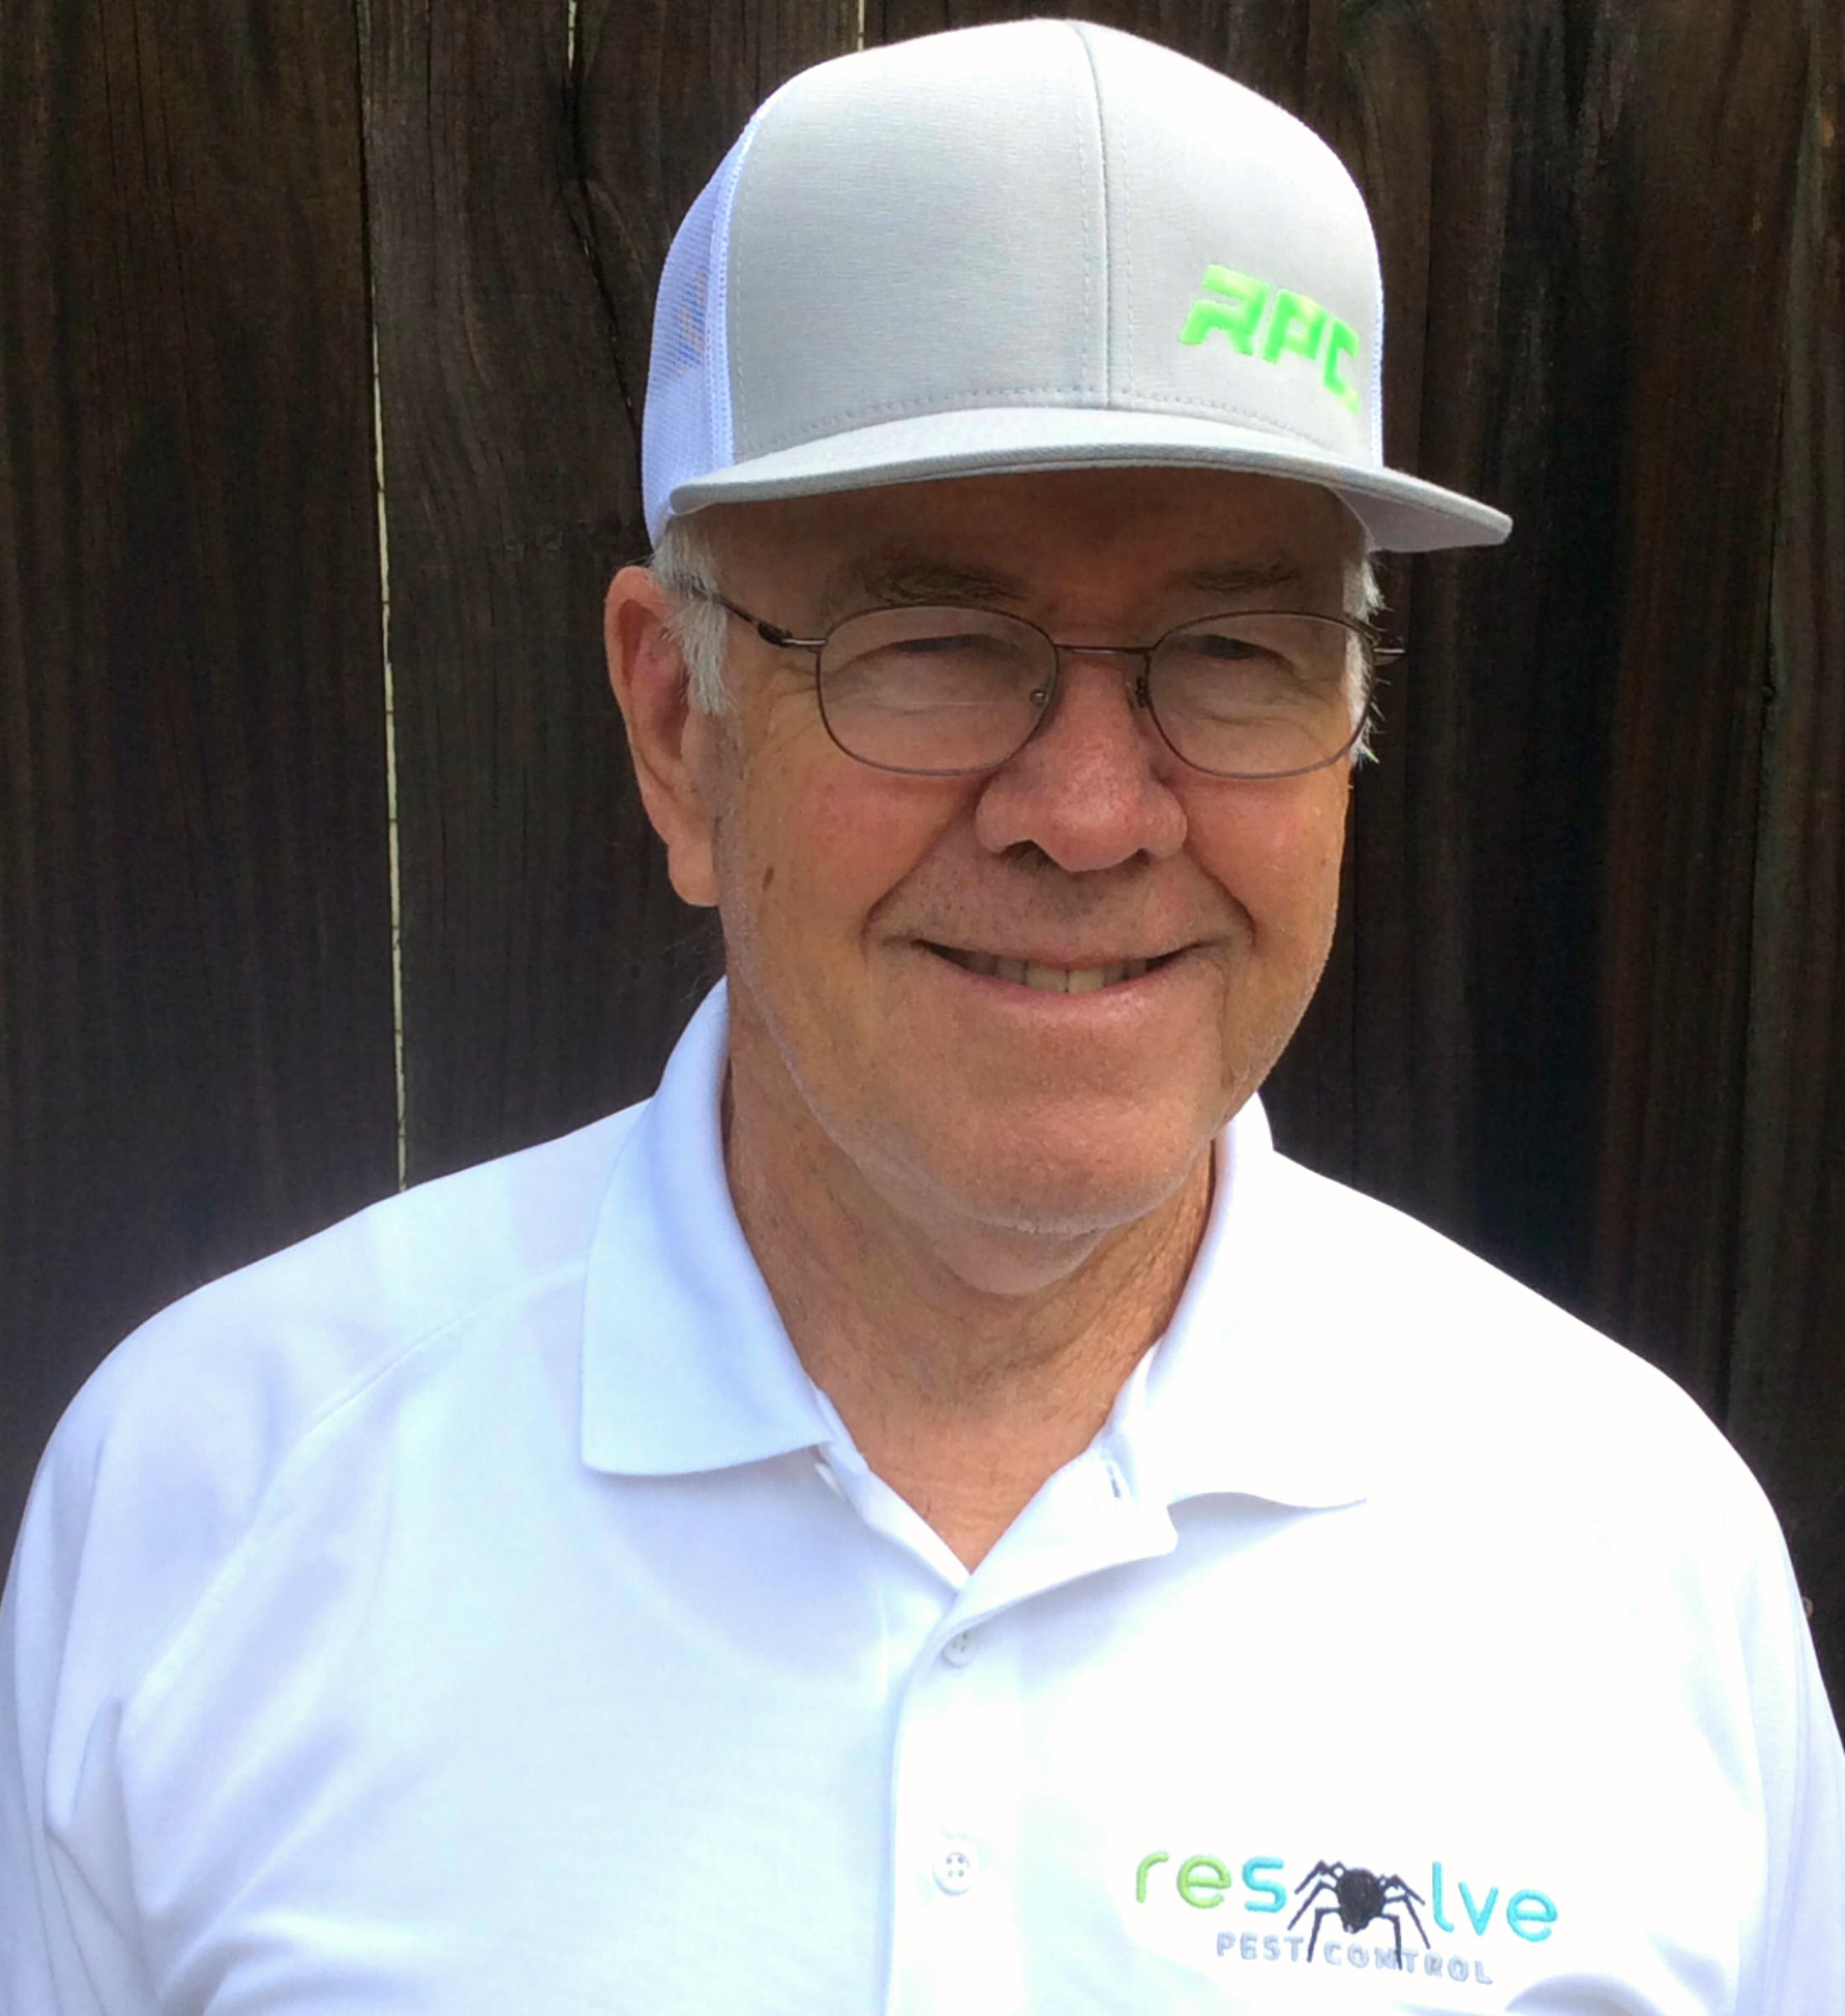 Expertise - Resolve's Licensed Technician received his Ph.D. in Entomology and is now a professor emeritus after teaching at LSU for over 40 years.In addition to publishing over 80 research articles, he has over 30 years in leadership roles with the Entomological Society of America.